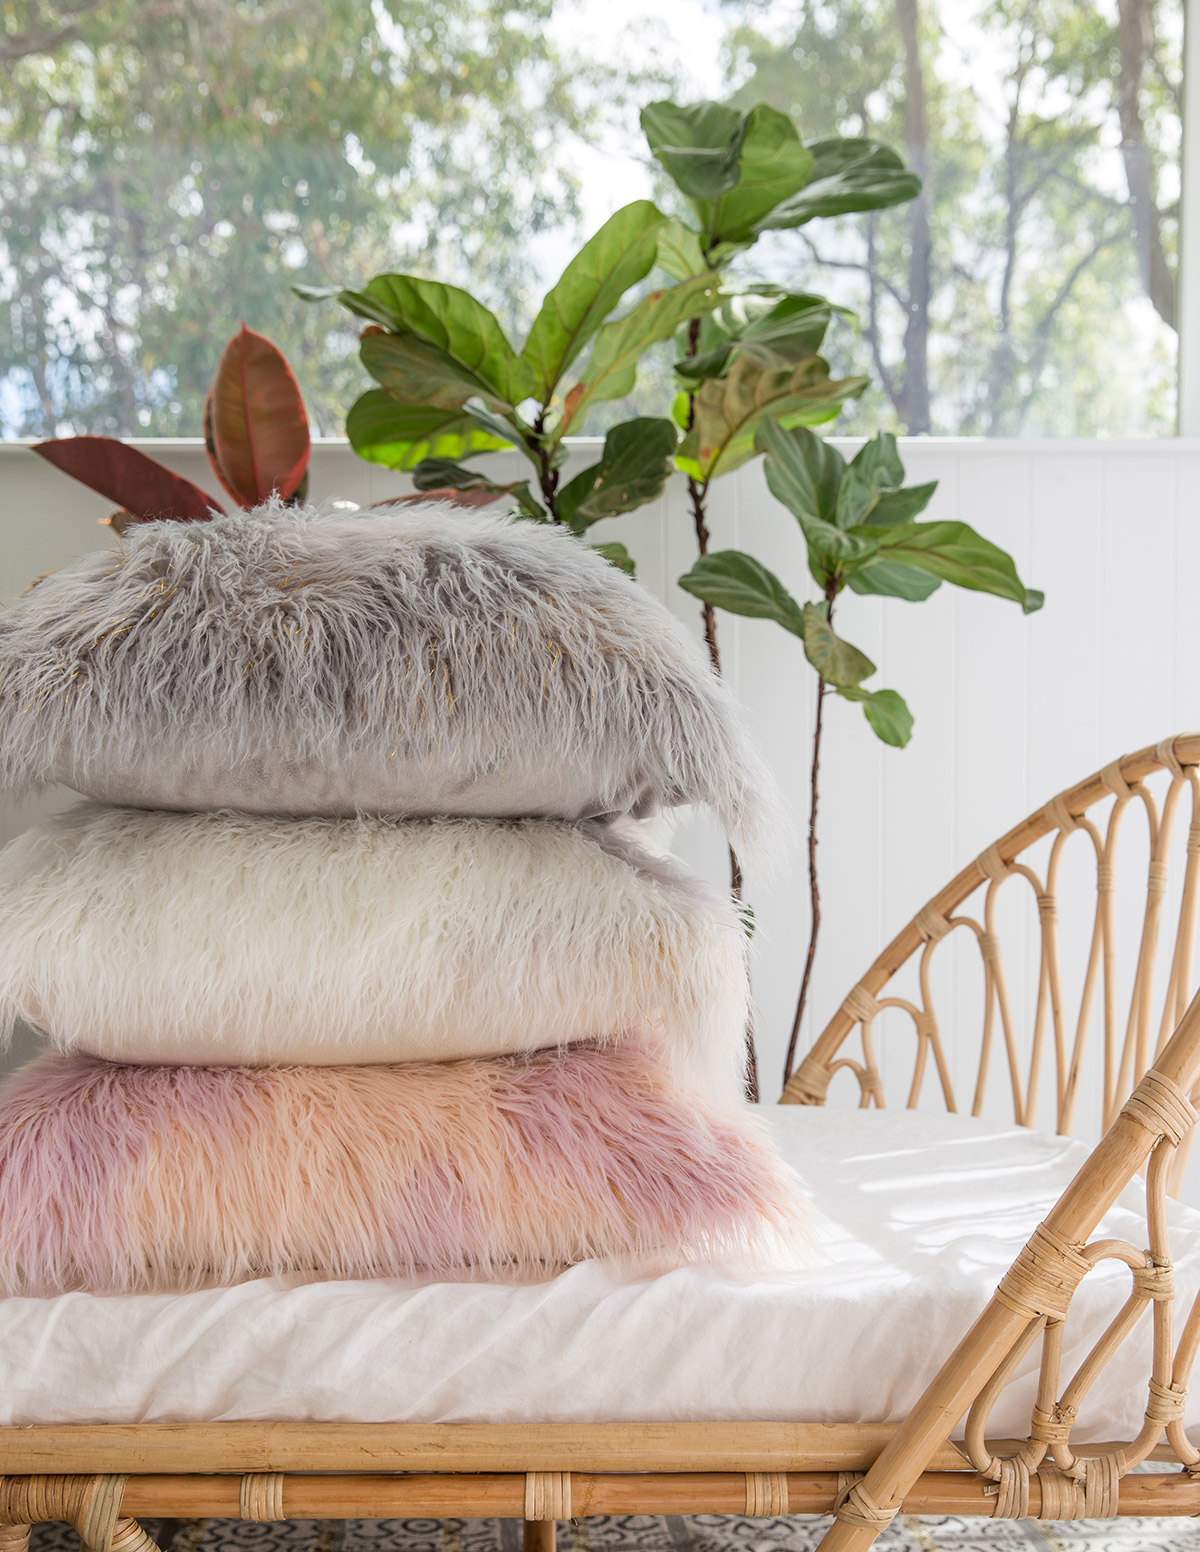 The ultimate fluffy pillows by Amigos de Hoy